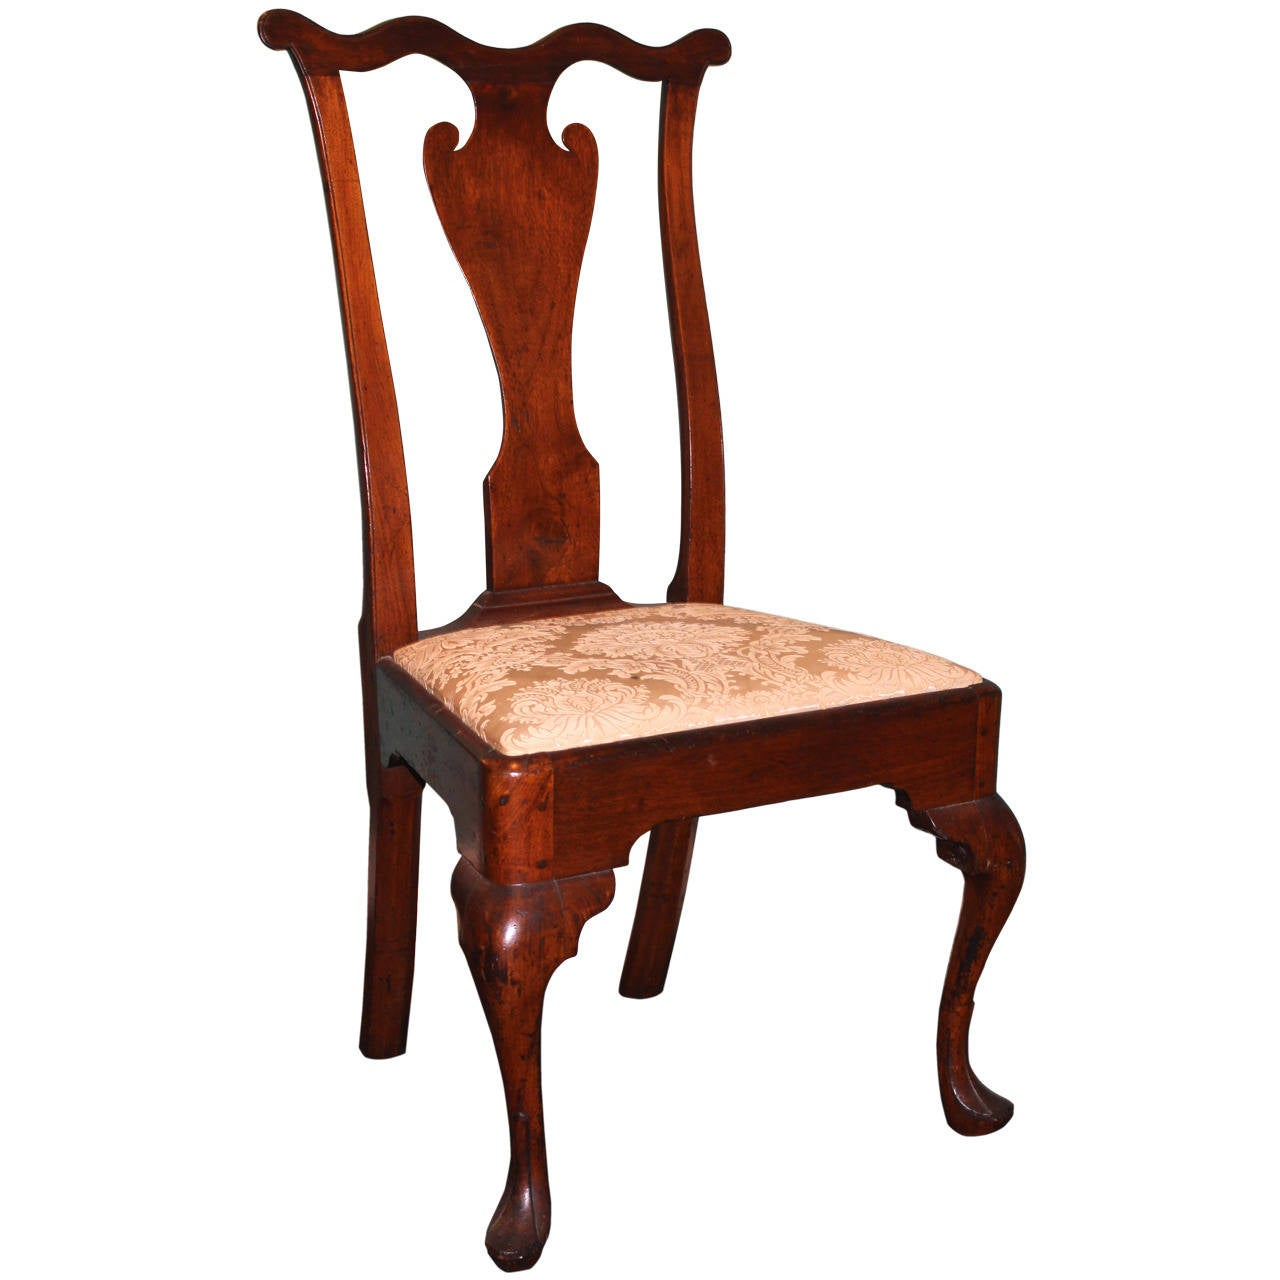 Philadelphia queen anne walnut side chair c 1755 for Queen anne furniture